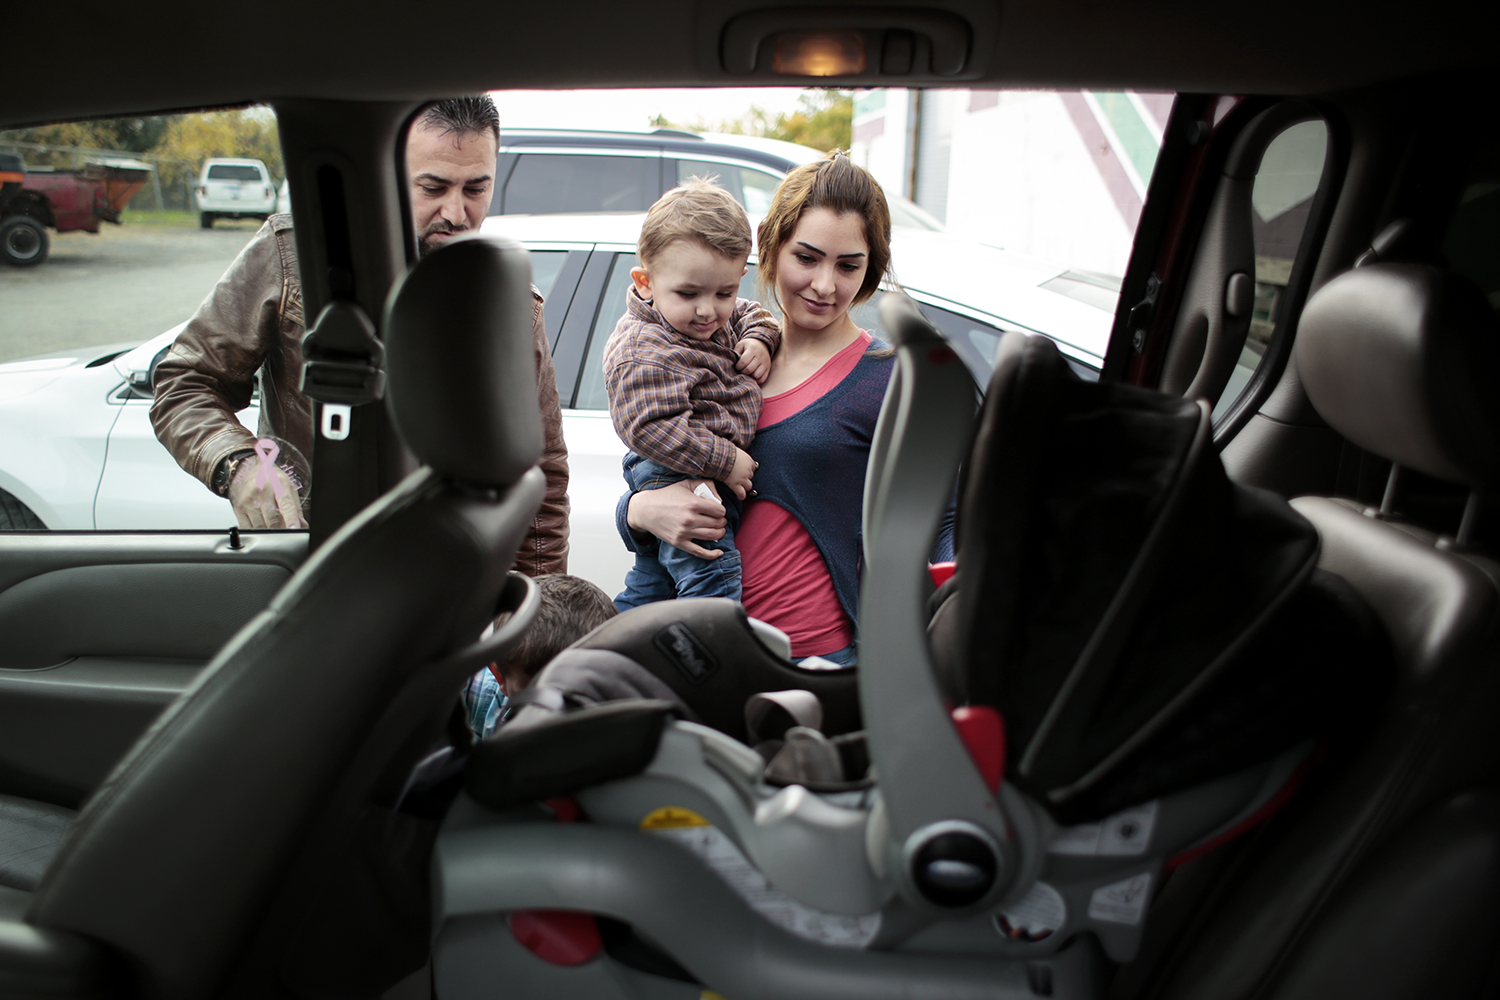 Waseem Ilotte, left, and his wife Lara Al Aso, right, load their son Aras Ilotte, 18 months old, all from Warren, into their vehicle after receiving aid at the Chaldean American Ladies of Charity Center on Friday, Oct. 10, 2014 in Troy. Tim Galloway/Special for DFP